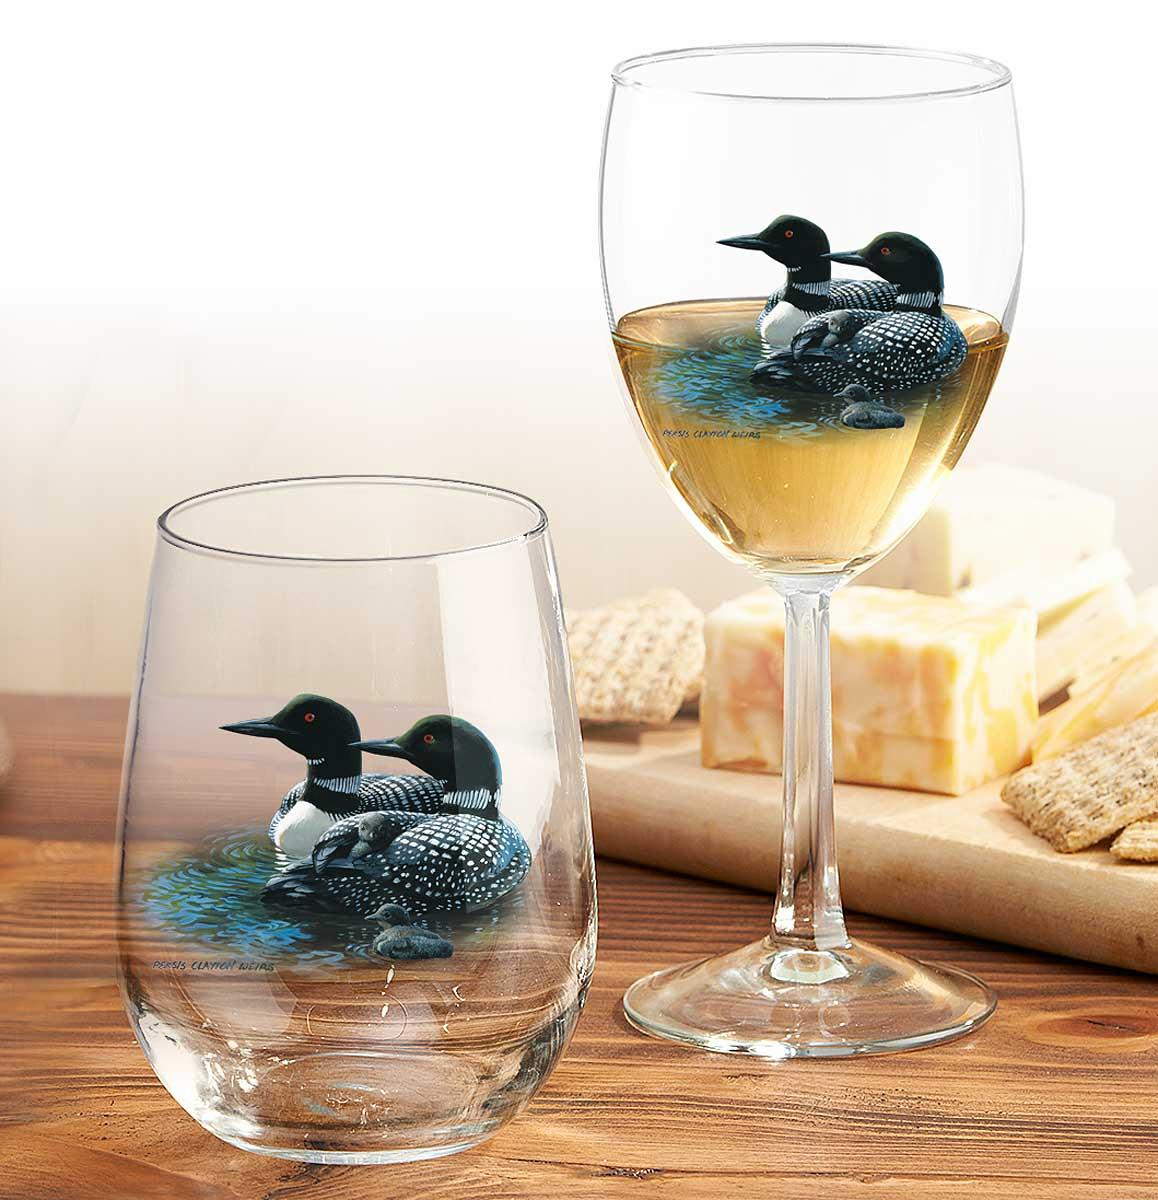 87227010SS:Loon Glassware Collection